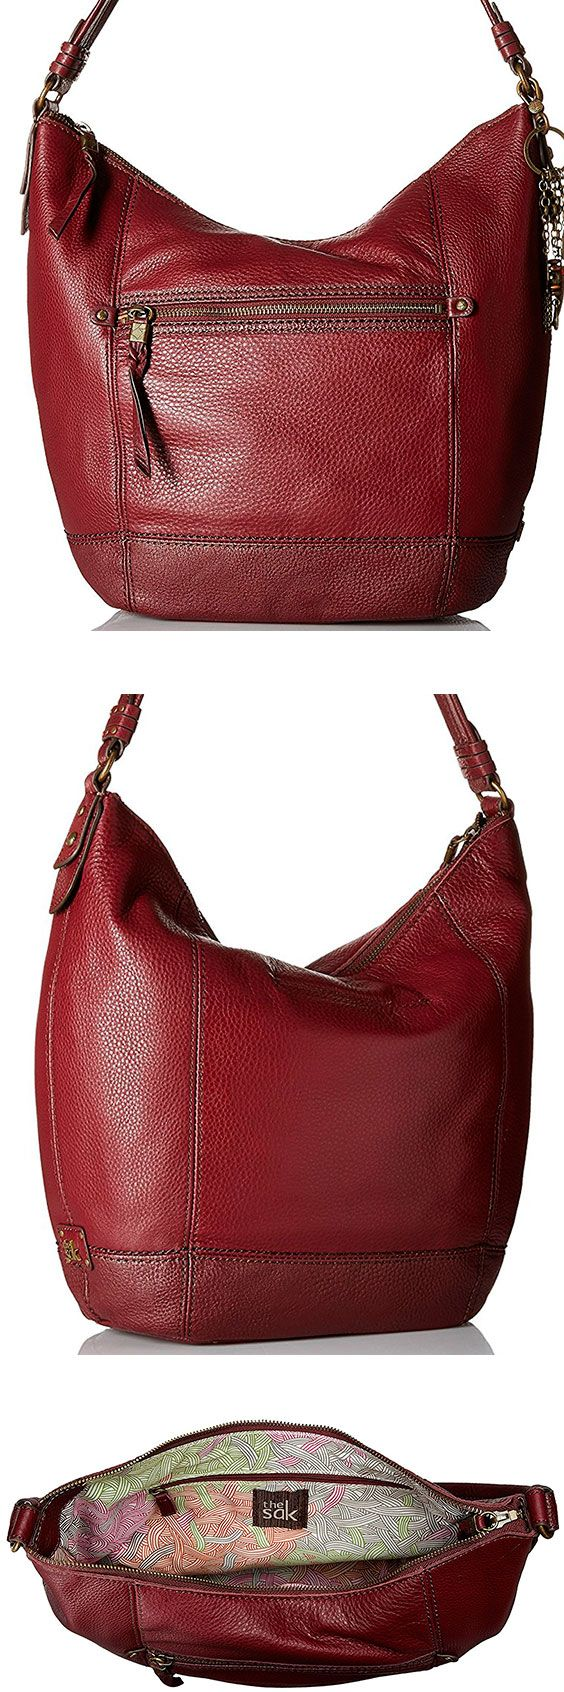 The Sak Sequoia Hobo Bag – Best Large Leather Hobo Shoulder Bag The Sequoia lives up to its namesake and comes in at a relatively large, inexpensive shoulder bag. With 11 styles to choose from, the right person will love the oversized design. #TheSAK #Leather #Baguette #Handbag #Hobo #ShoulderBag #Bag #Red